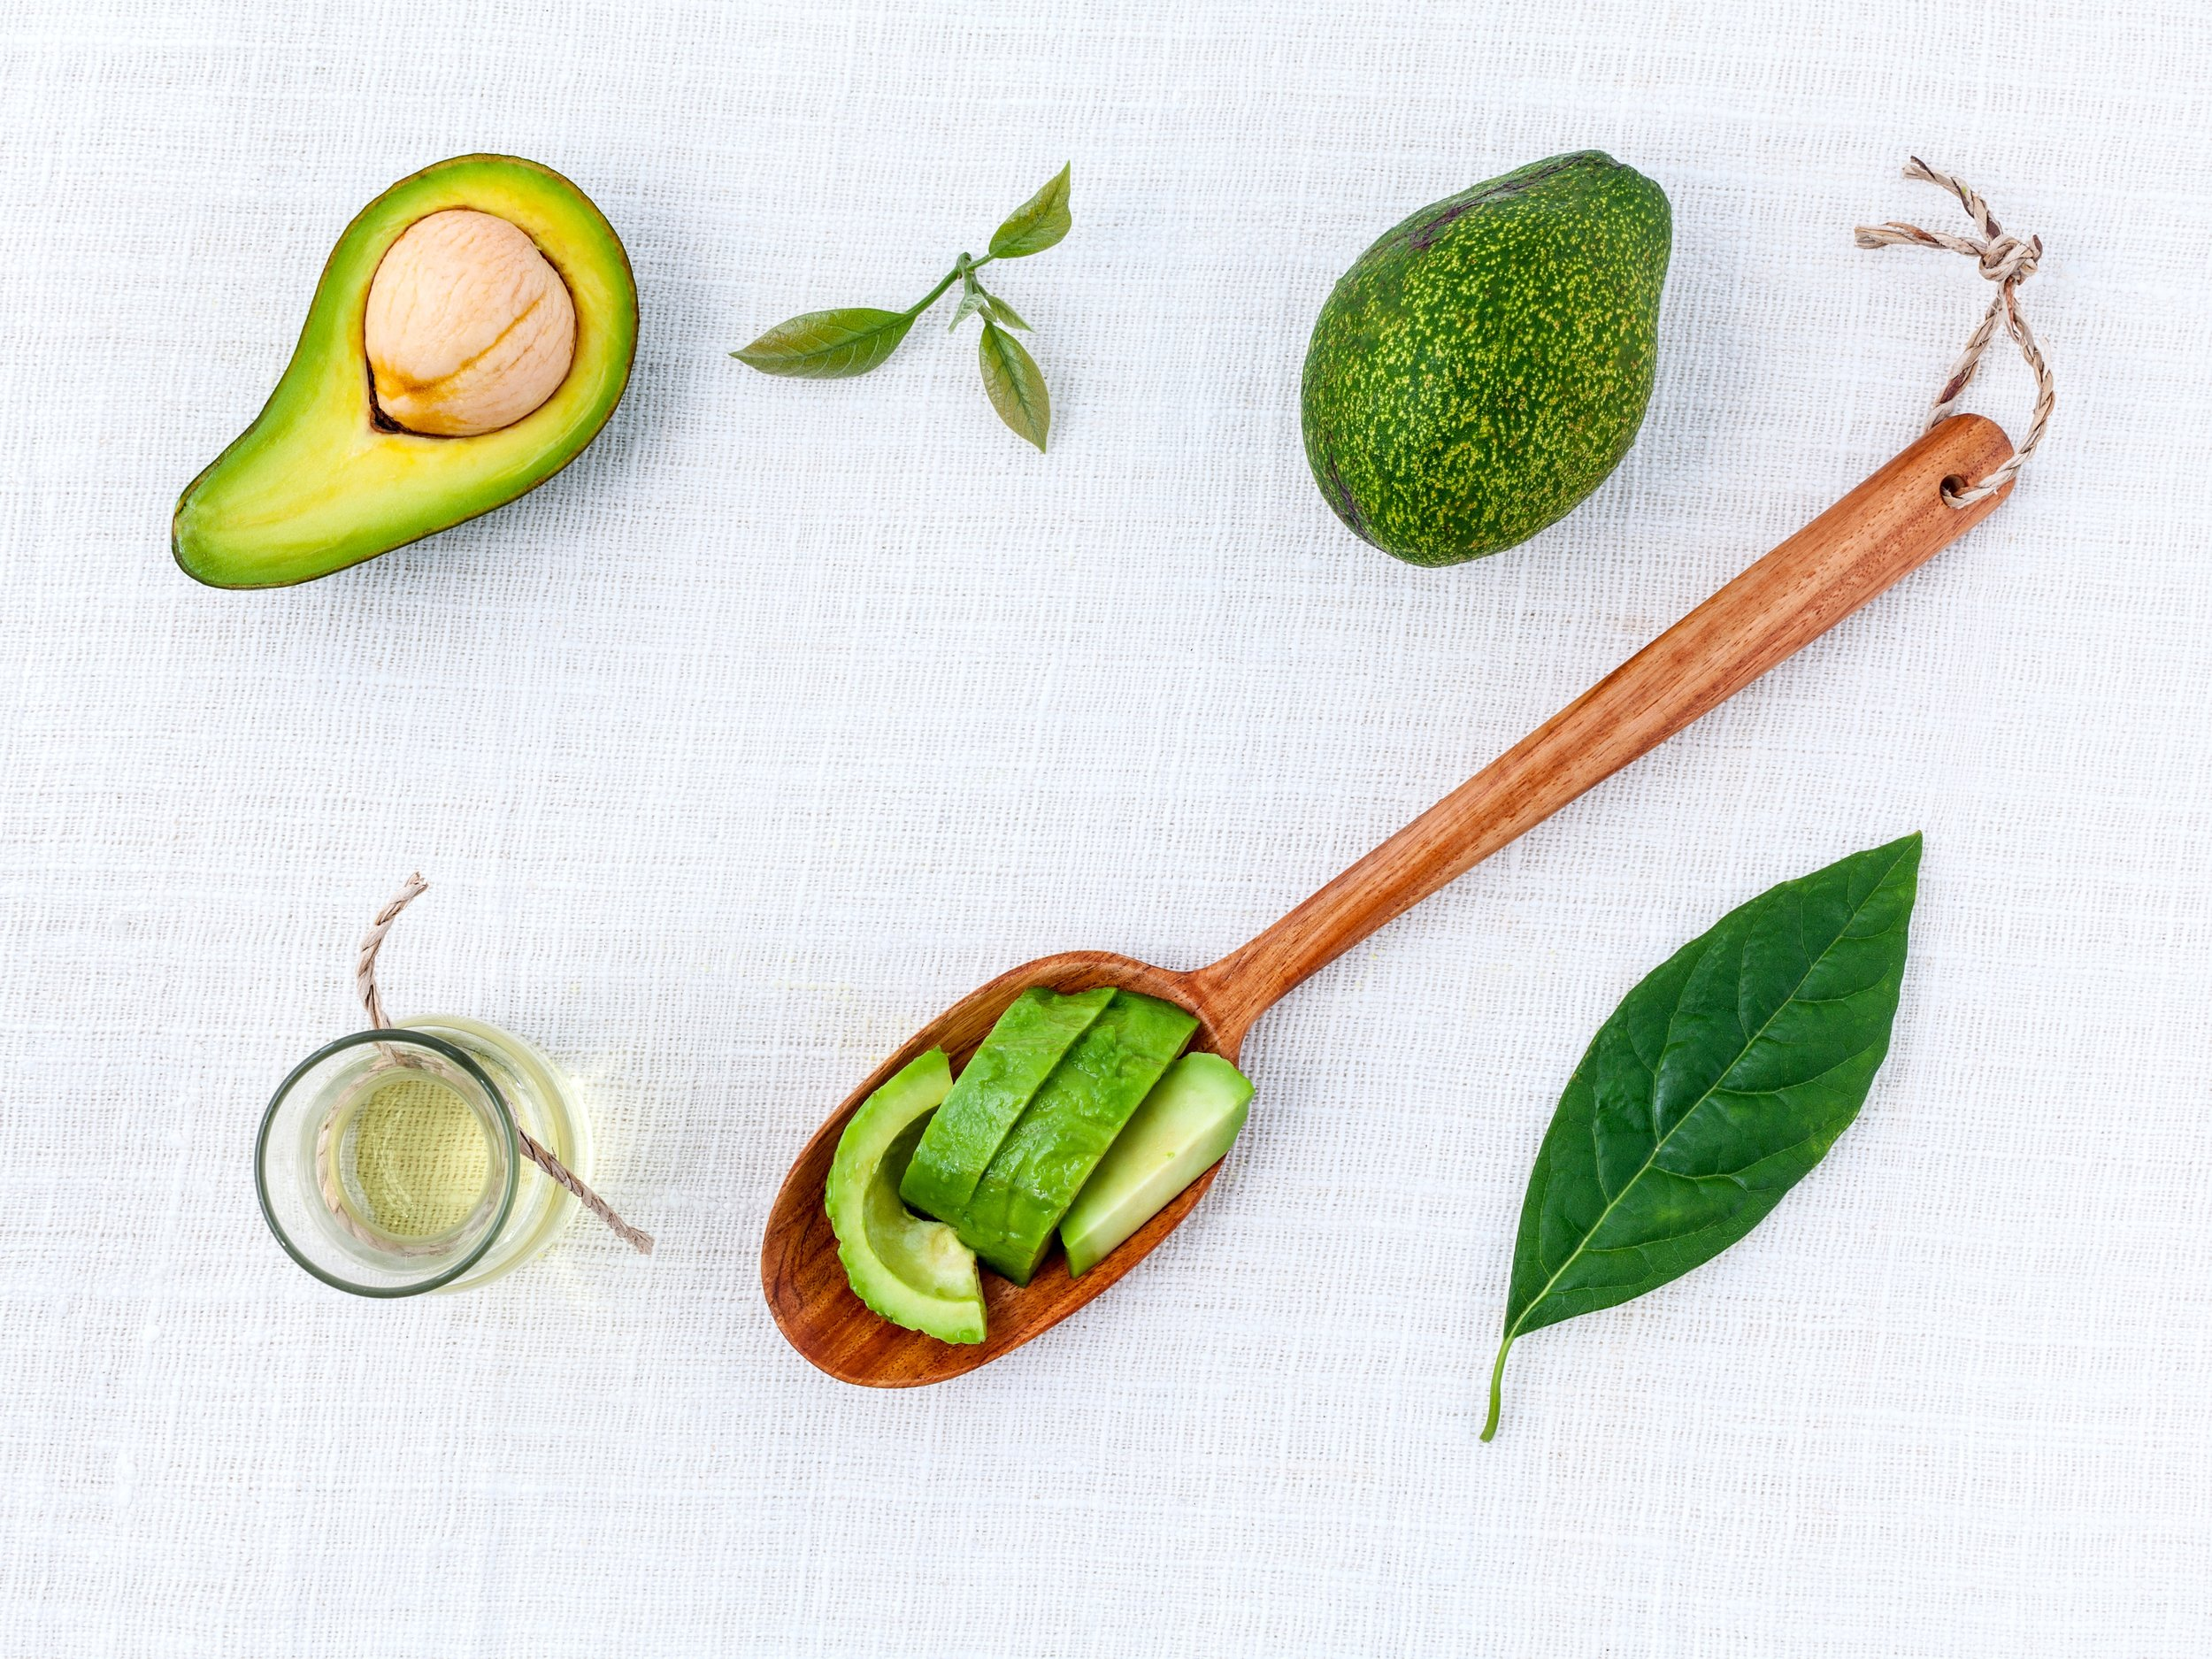 AVOCADO HOT OIL TREATMENT   AVOCADO OIL IS USED TO STIMULATE HAIR GROWTH.  IT IS EXCELLENT FOR RESTORING DEHYDRATED, AGING, SUN-DAMAGED HAIR.